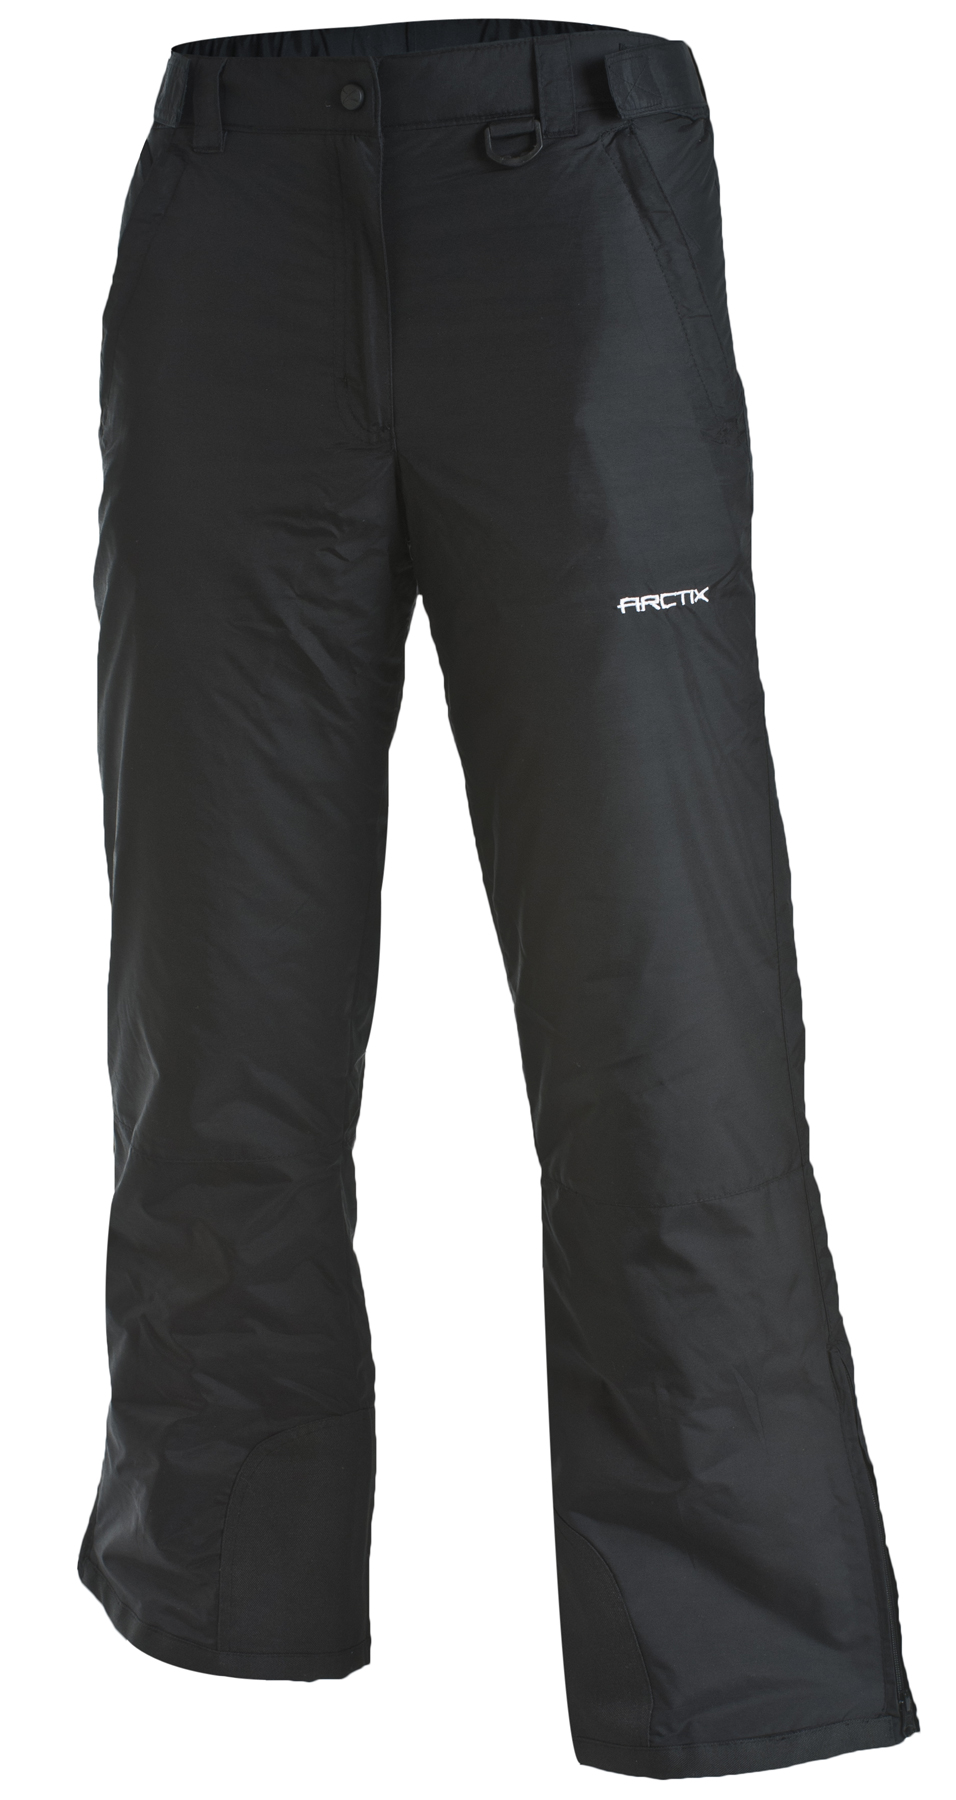 Snow pants for women in this selection are available in a range of colors, from classic black to bright, eye-catching hues. Find the right look for you and carve up the mountainside like a pro. Ladies' ski pants from this collection are durable and tough.